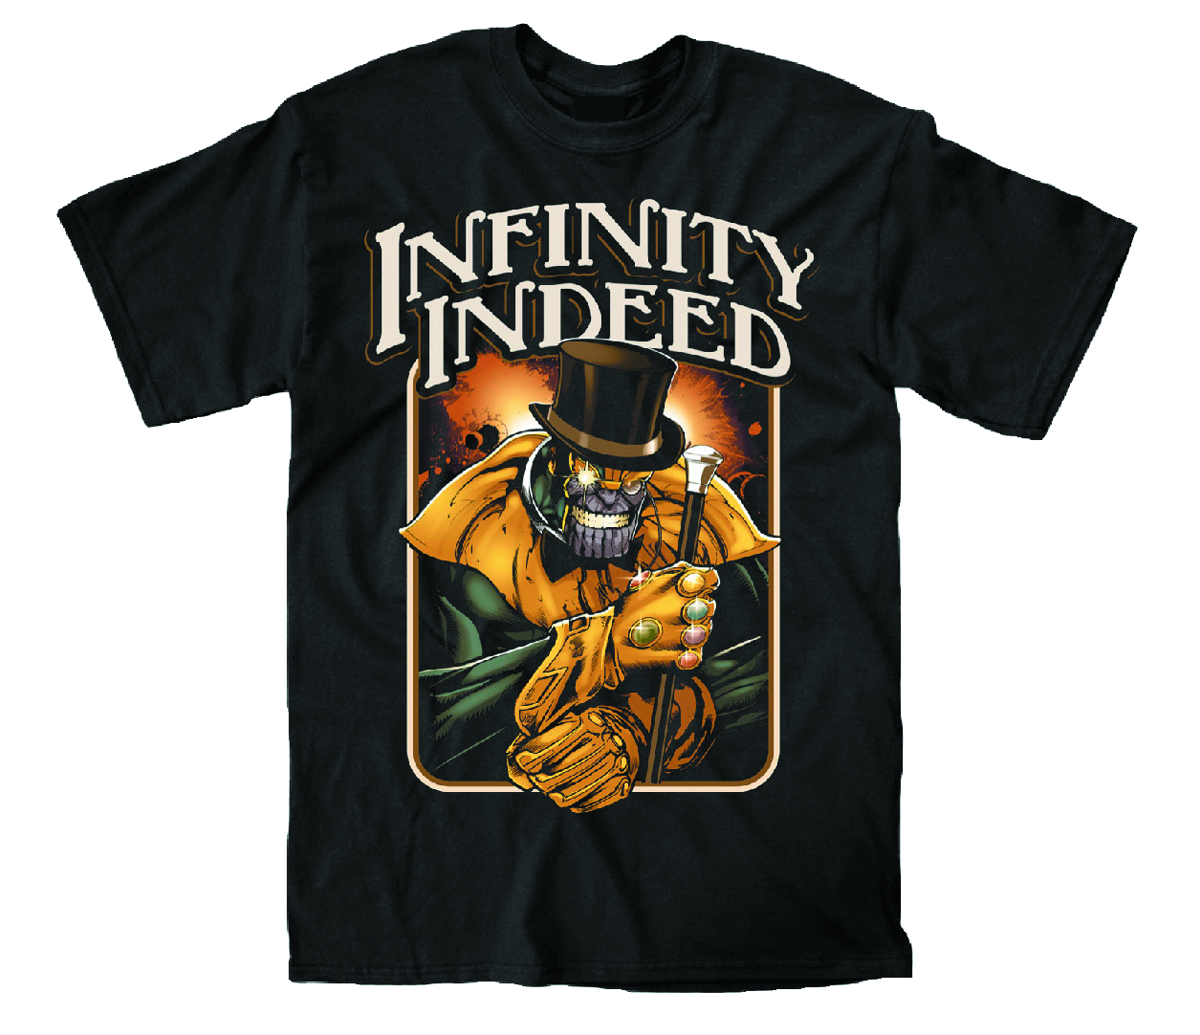 THANOS INFINITY INDEED PX BLK T/S SM